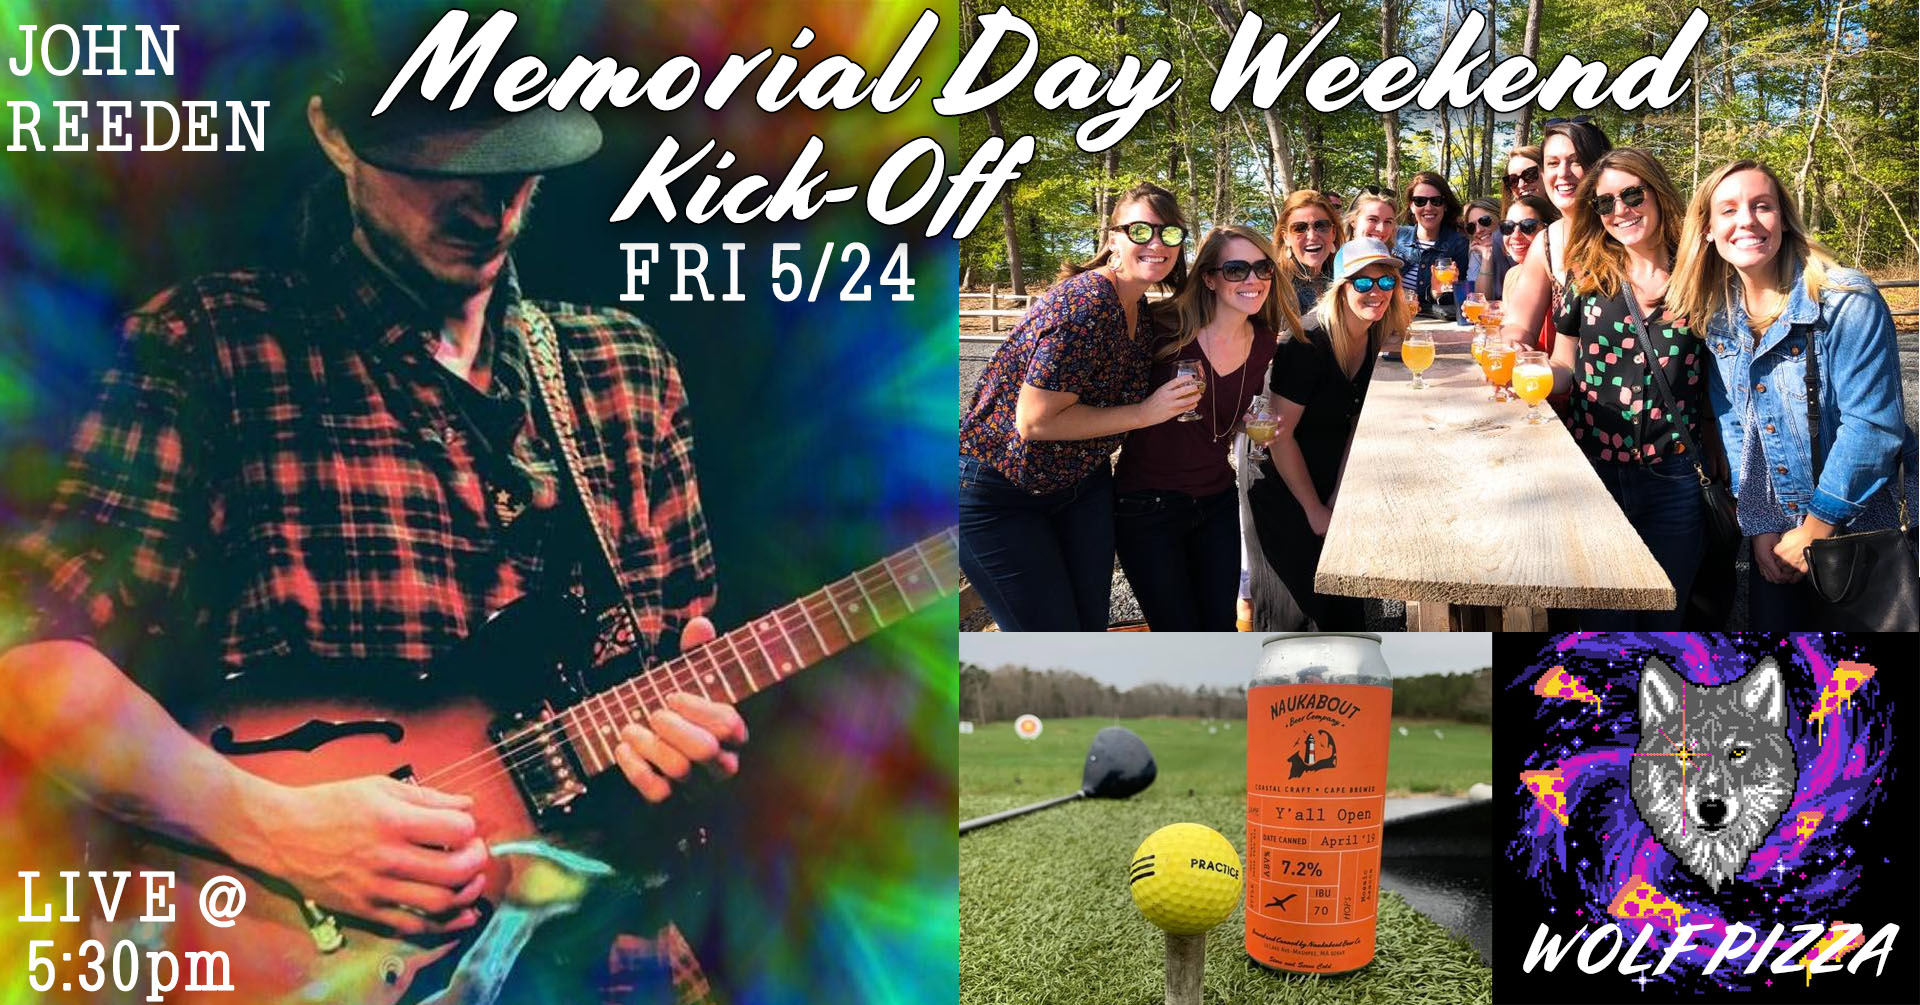 Memorial Day Weekend Friday Night Kick Off